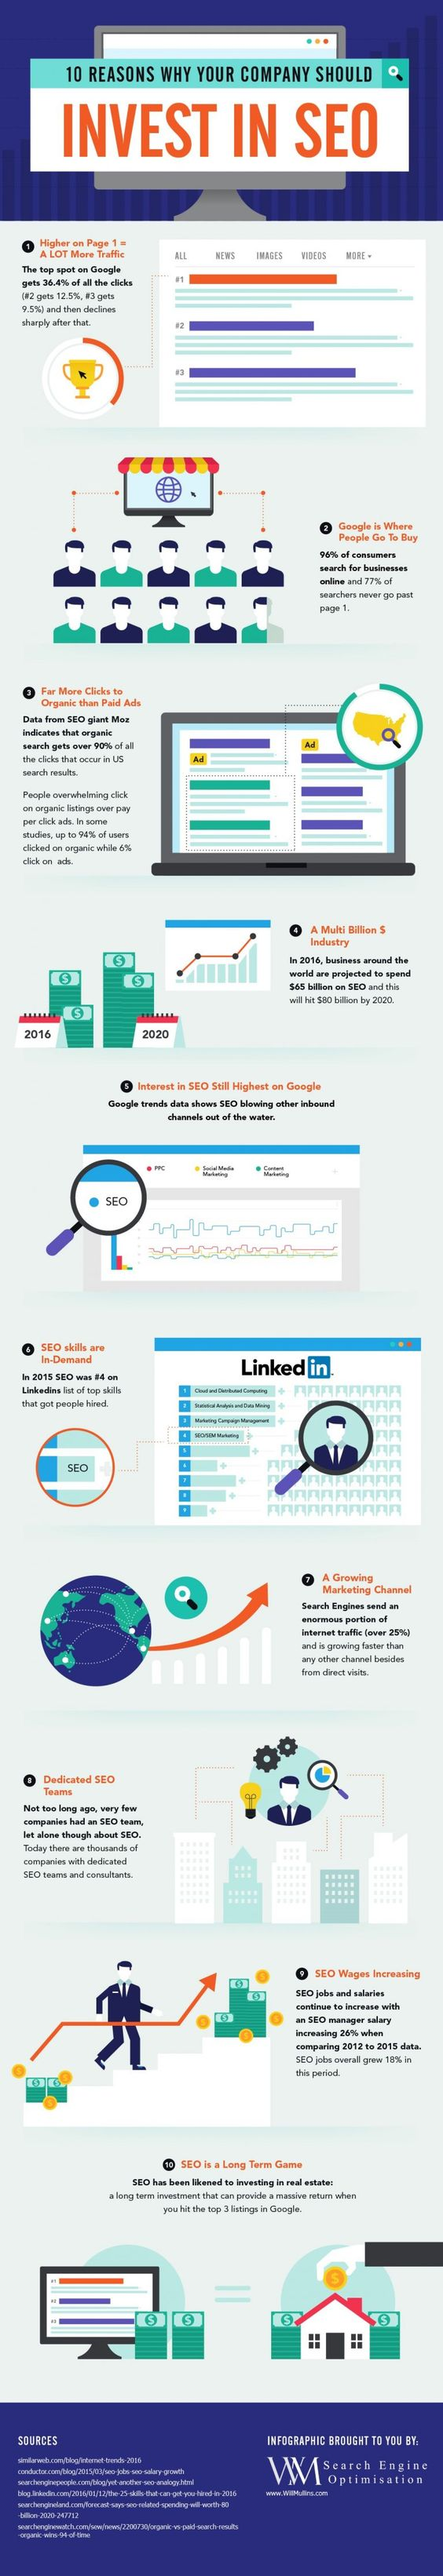 SEO Investment Infographic